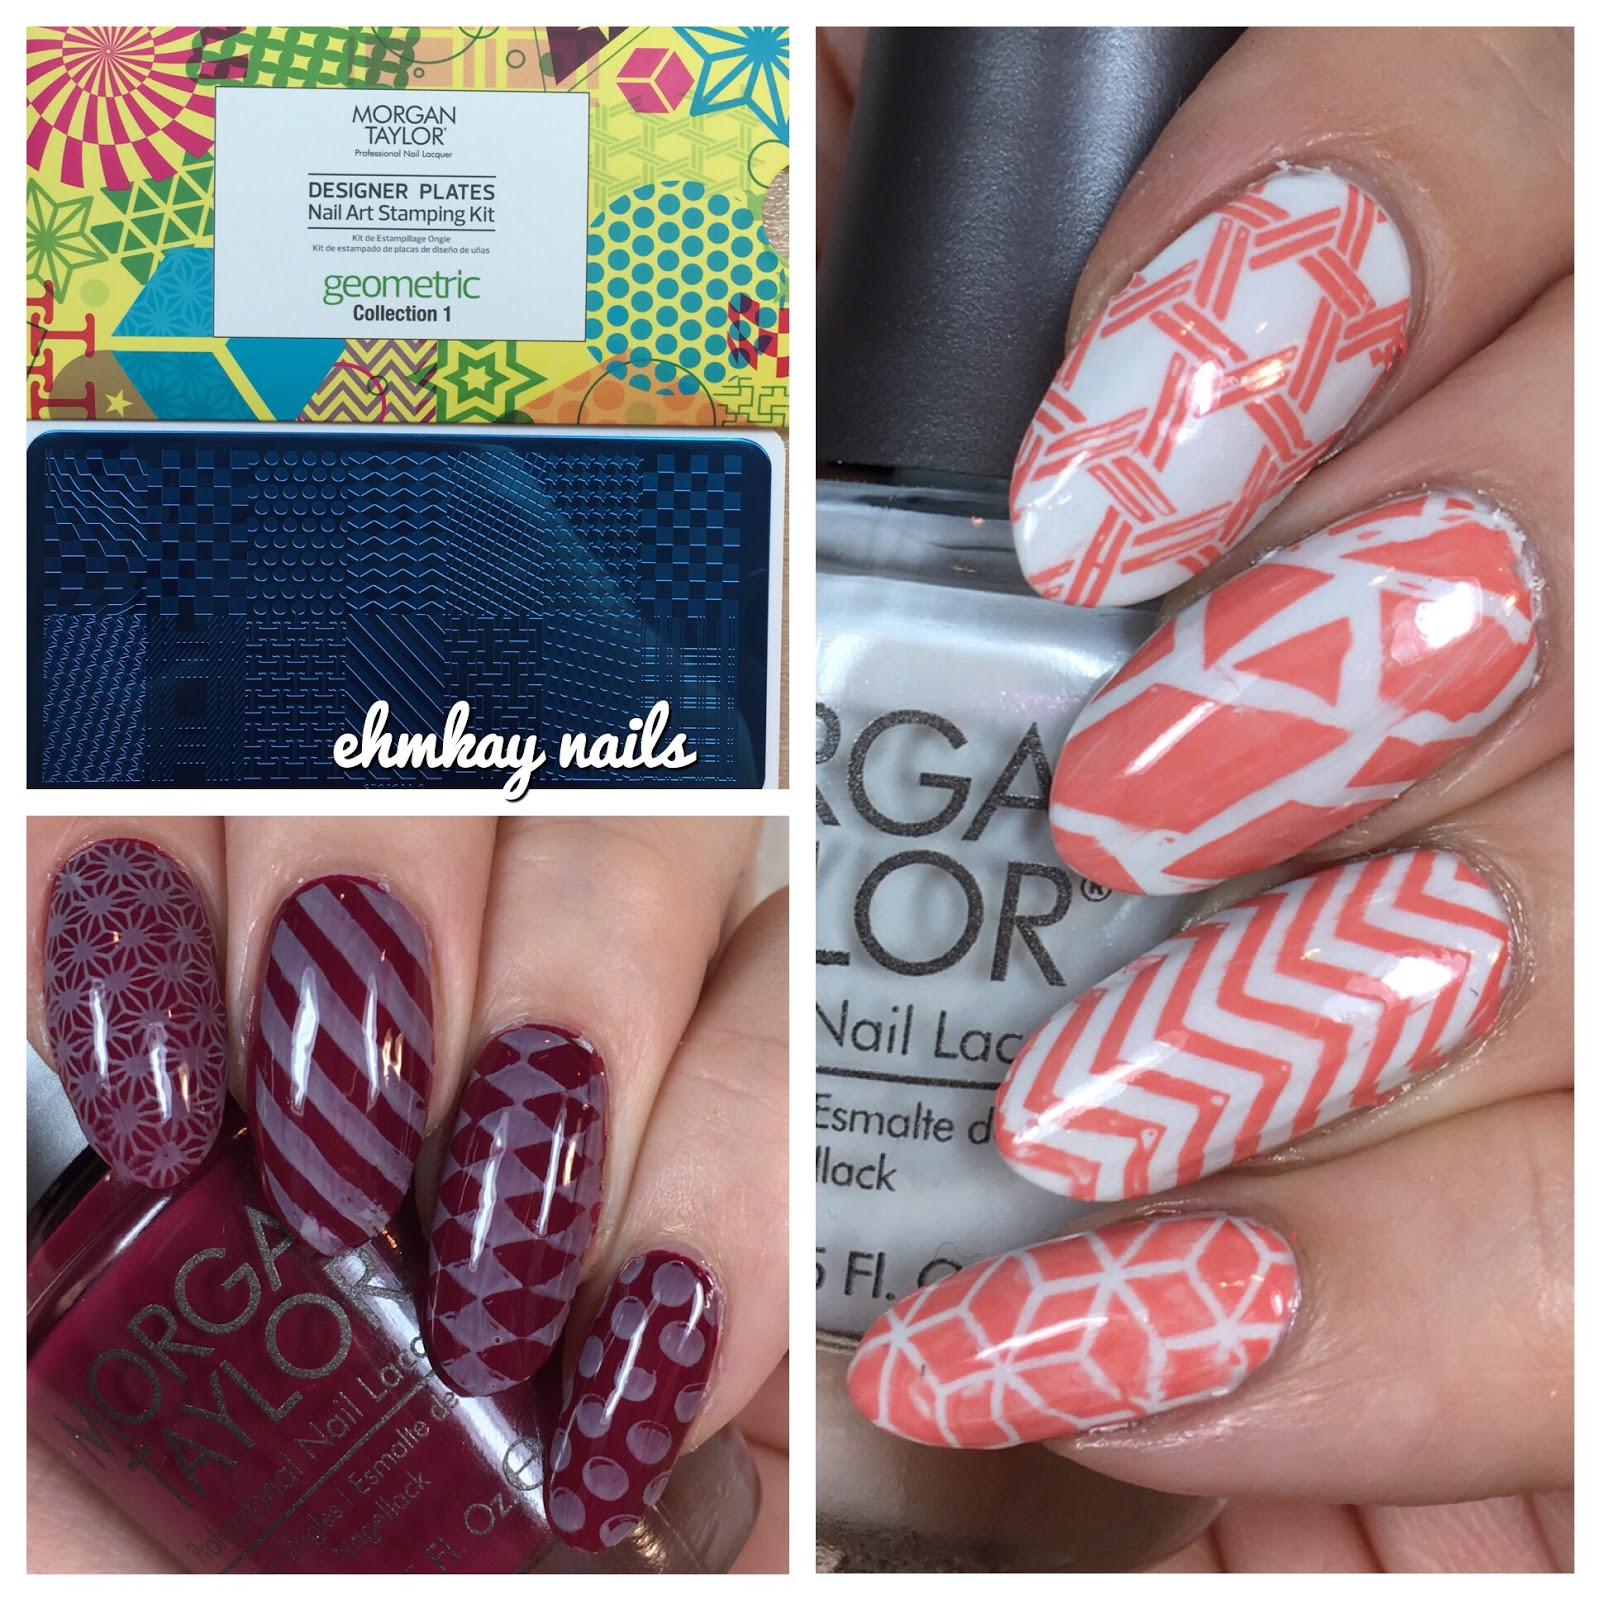 ehmkay nails: Morgan Taylor Geometric Stamping Kit